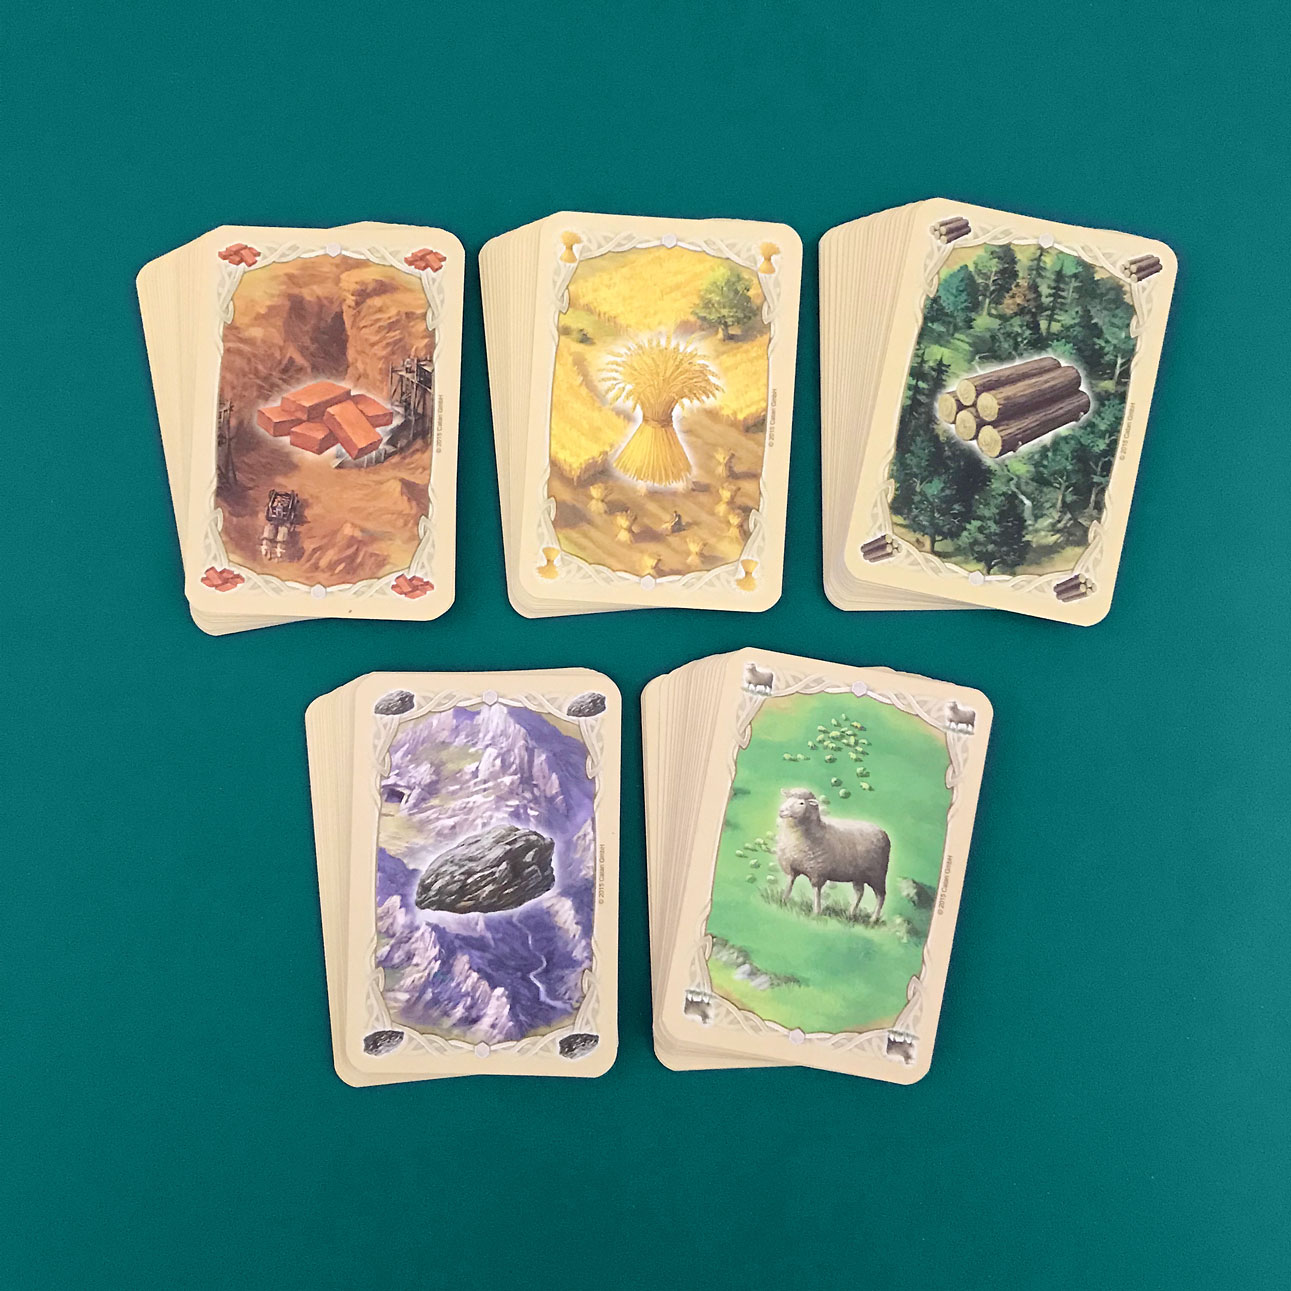 settlers of catan resource cards